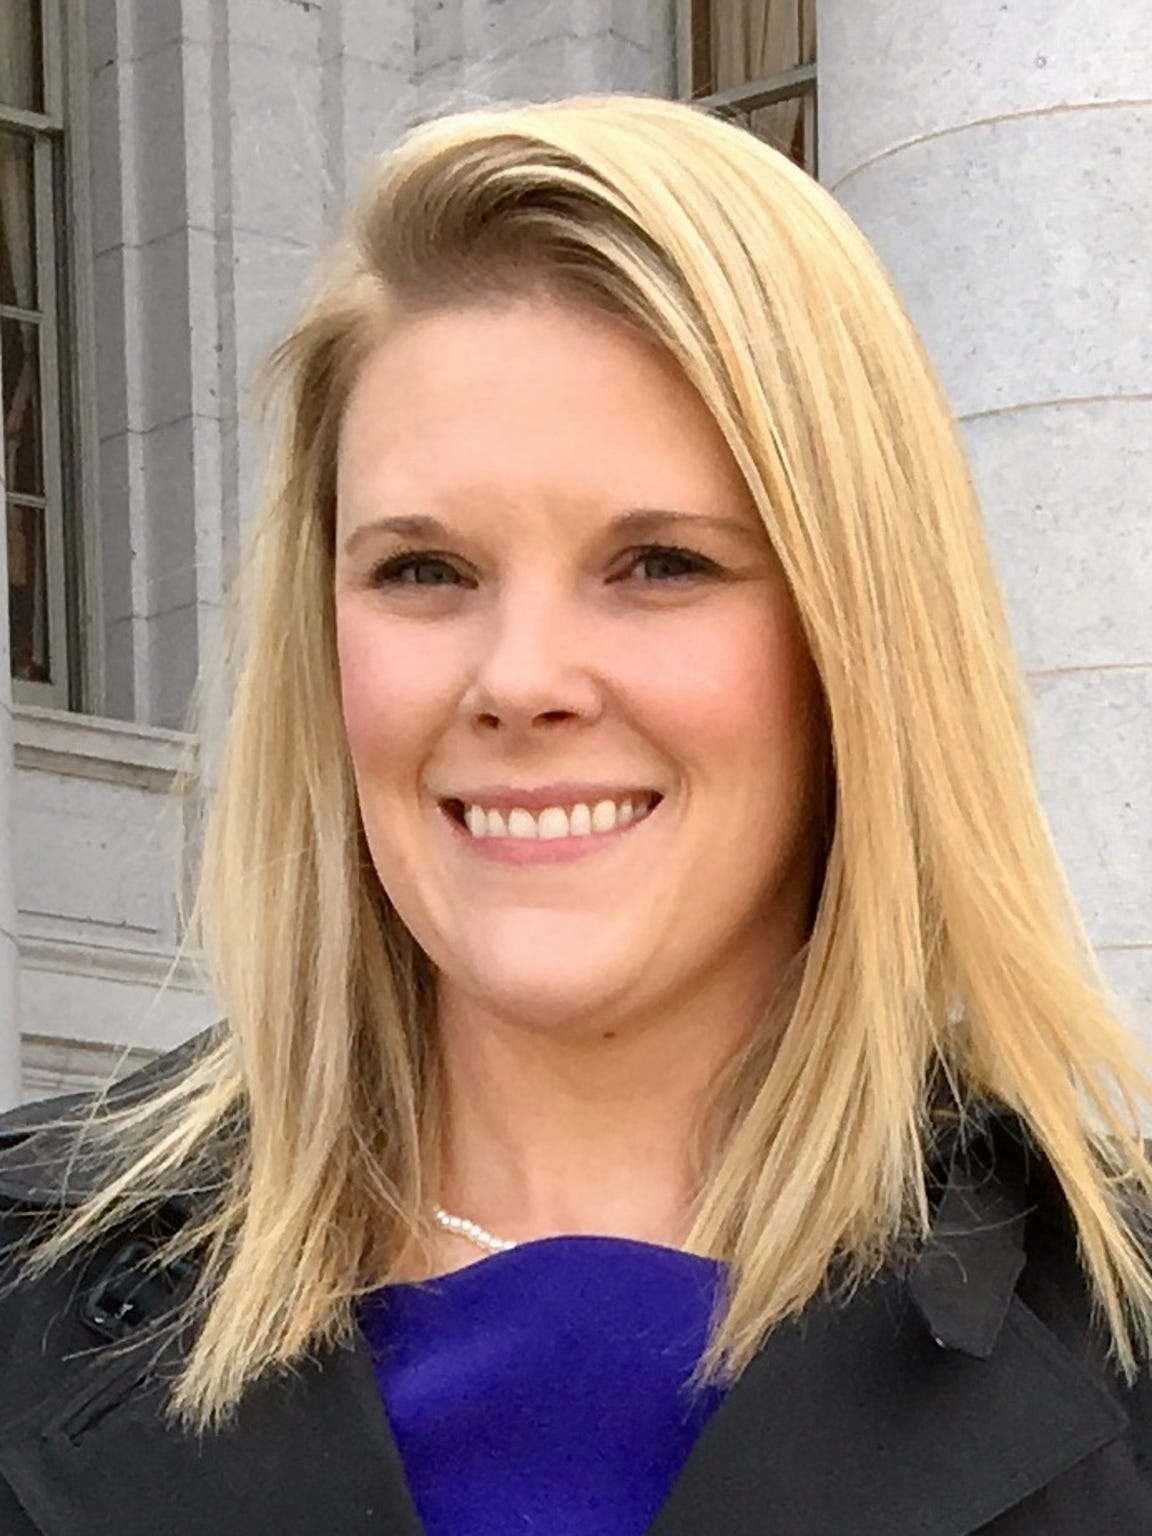 Wisconsin Elections Commission Interim Administrator Meagan Wolfe says the state plans to use part of a $7 million federal grant to fill six new security positions before the Nov. 6 election to help ensure the integrity of the vote.